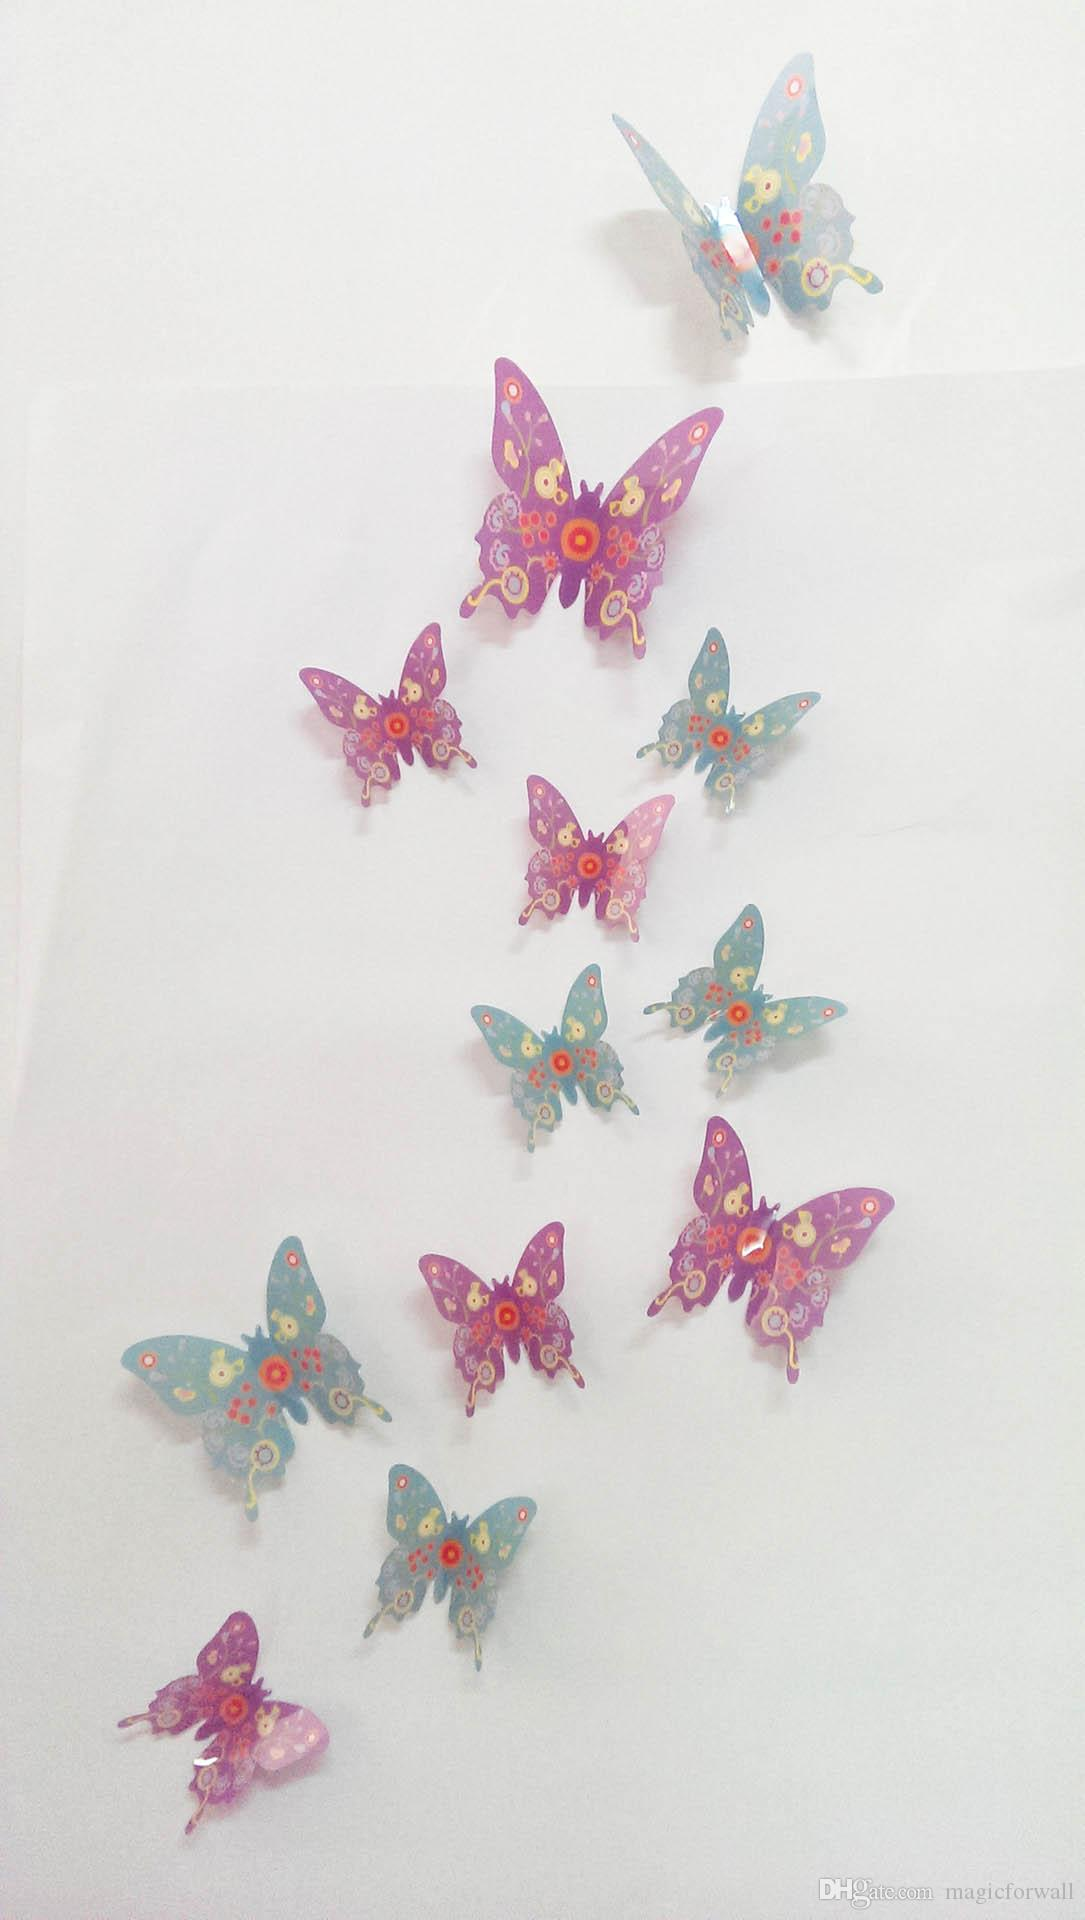 /Pack 3d Colorful Butterfly Wall Decals Diy Home Party Wedding Decoration Wall Stickers Poster Kitchen Refrigerator Wall Mural Applique Vinyl Wall Decor ... & Pack 3d Colorful Butterfly Wall Decals Diy Home Party Wedding ...